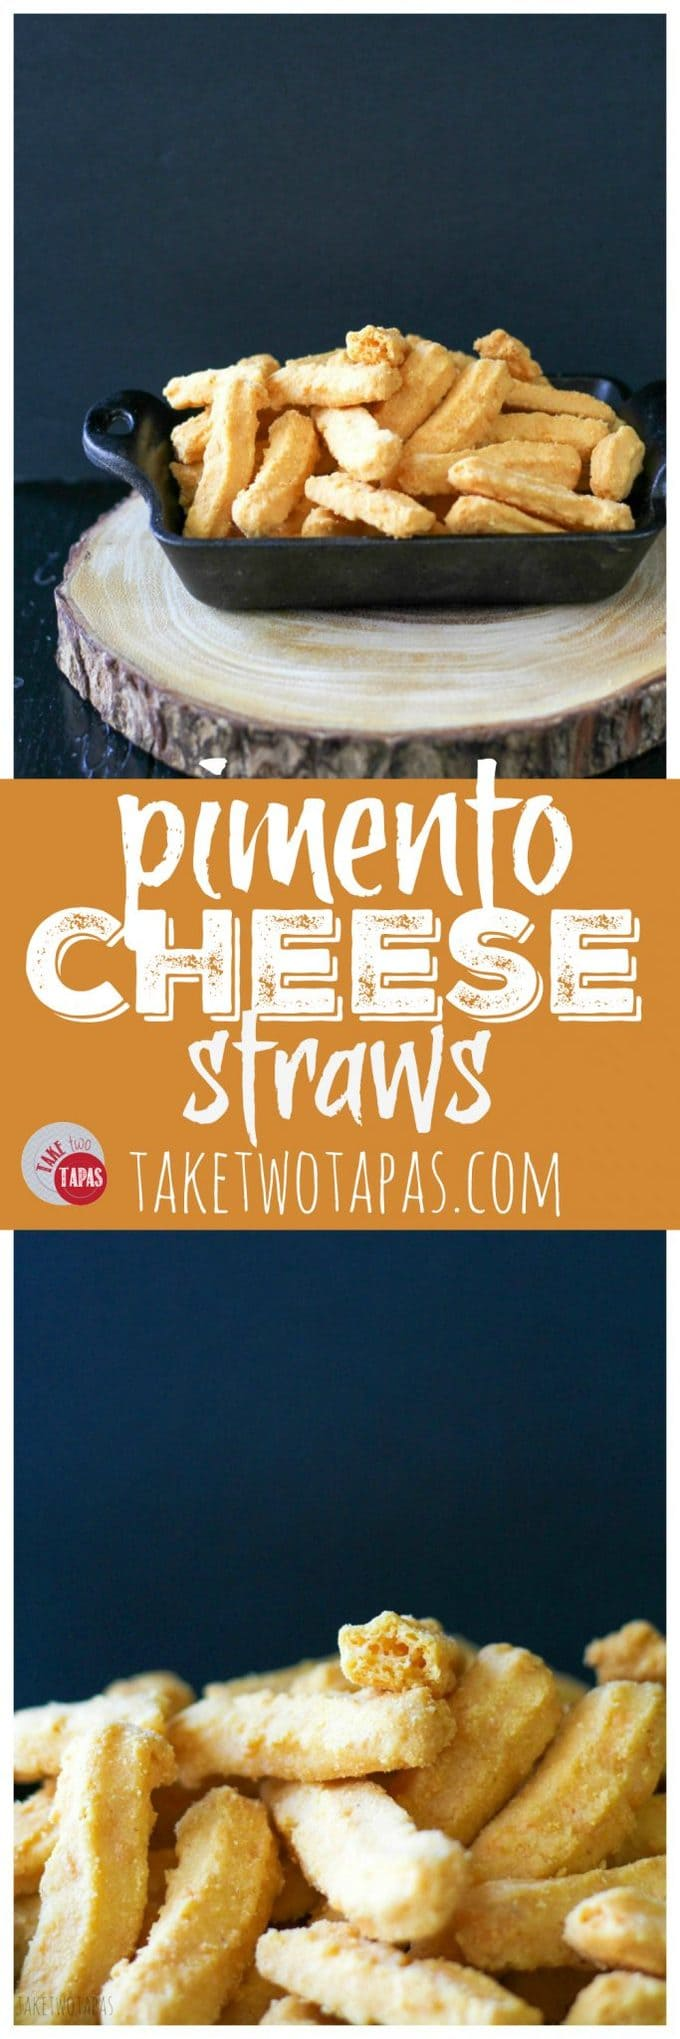 The Best Pimento Cheese Straws Recipe | Take Two Tapas | #pimentocheese #pimento #cheesestraws #recipe